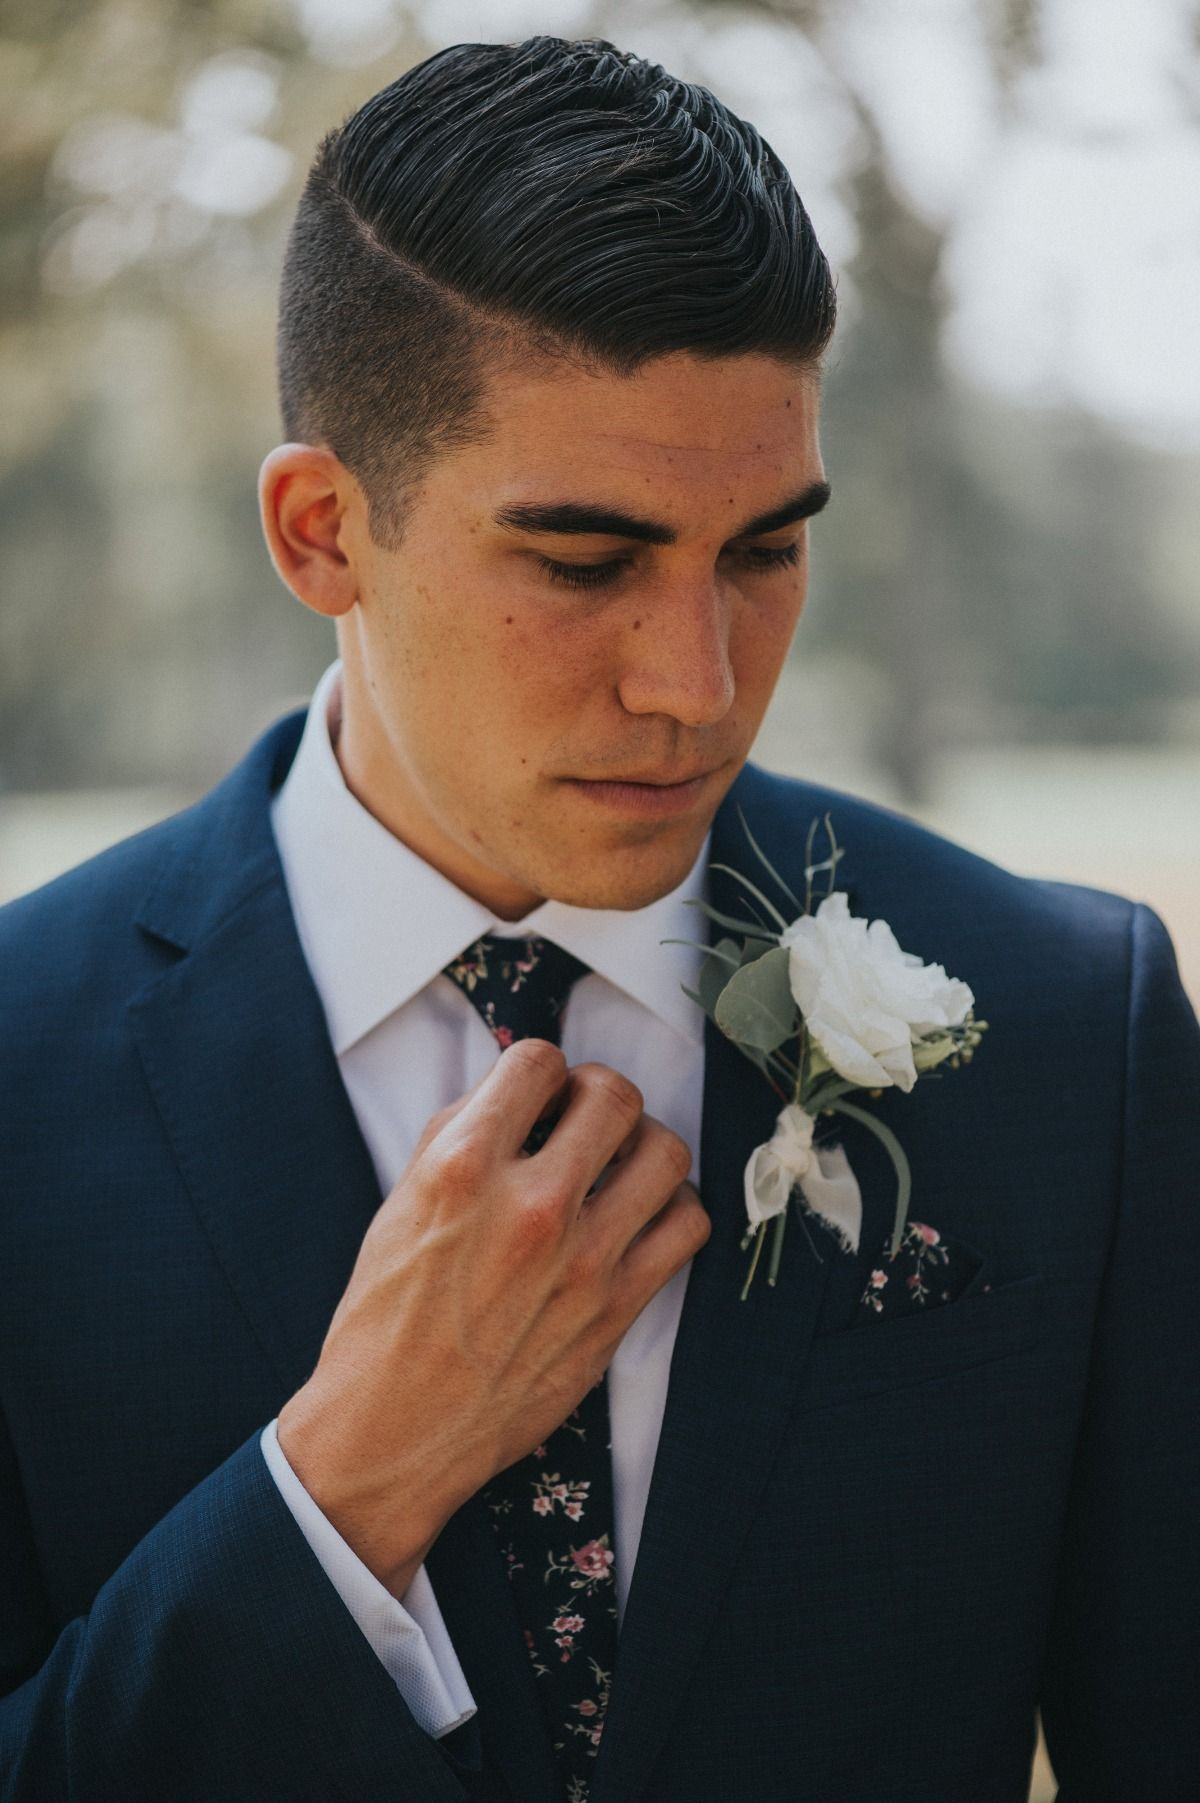 A White and Blush Napa Valley Summer Wedding Navy suit